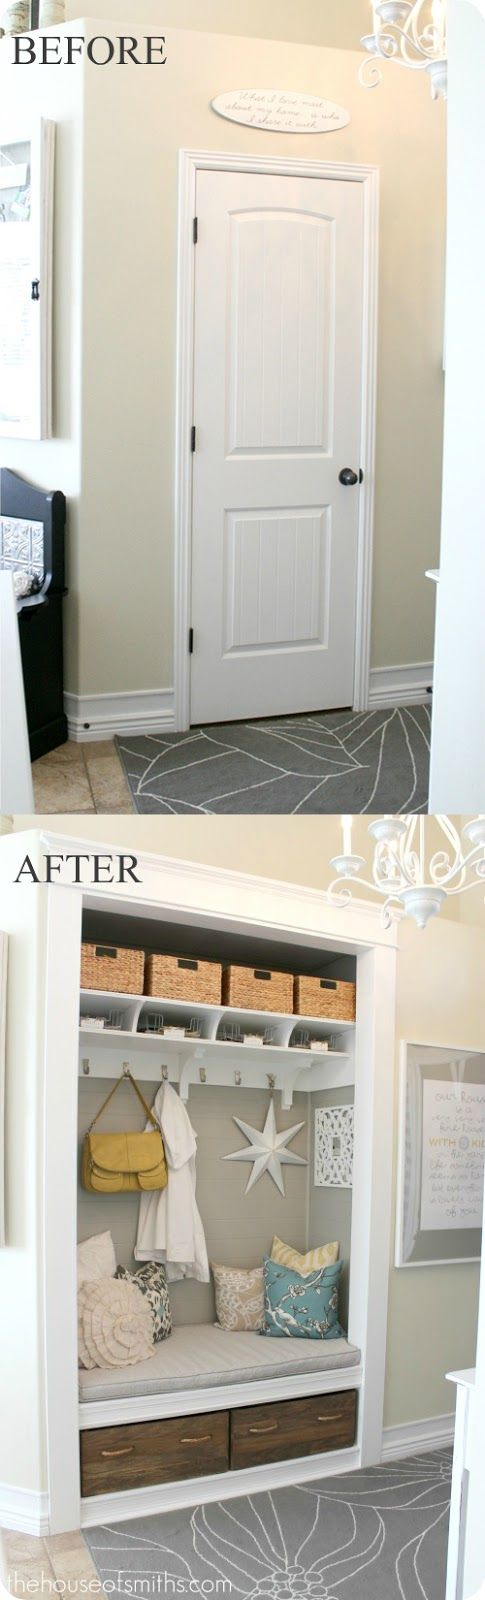 Before and after of closet